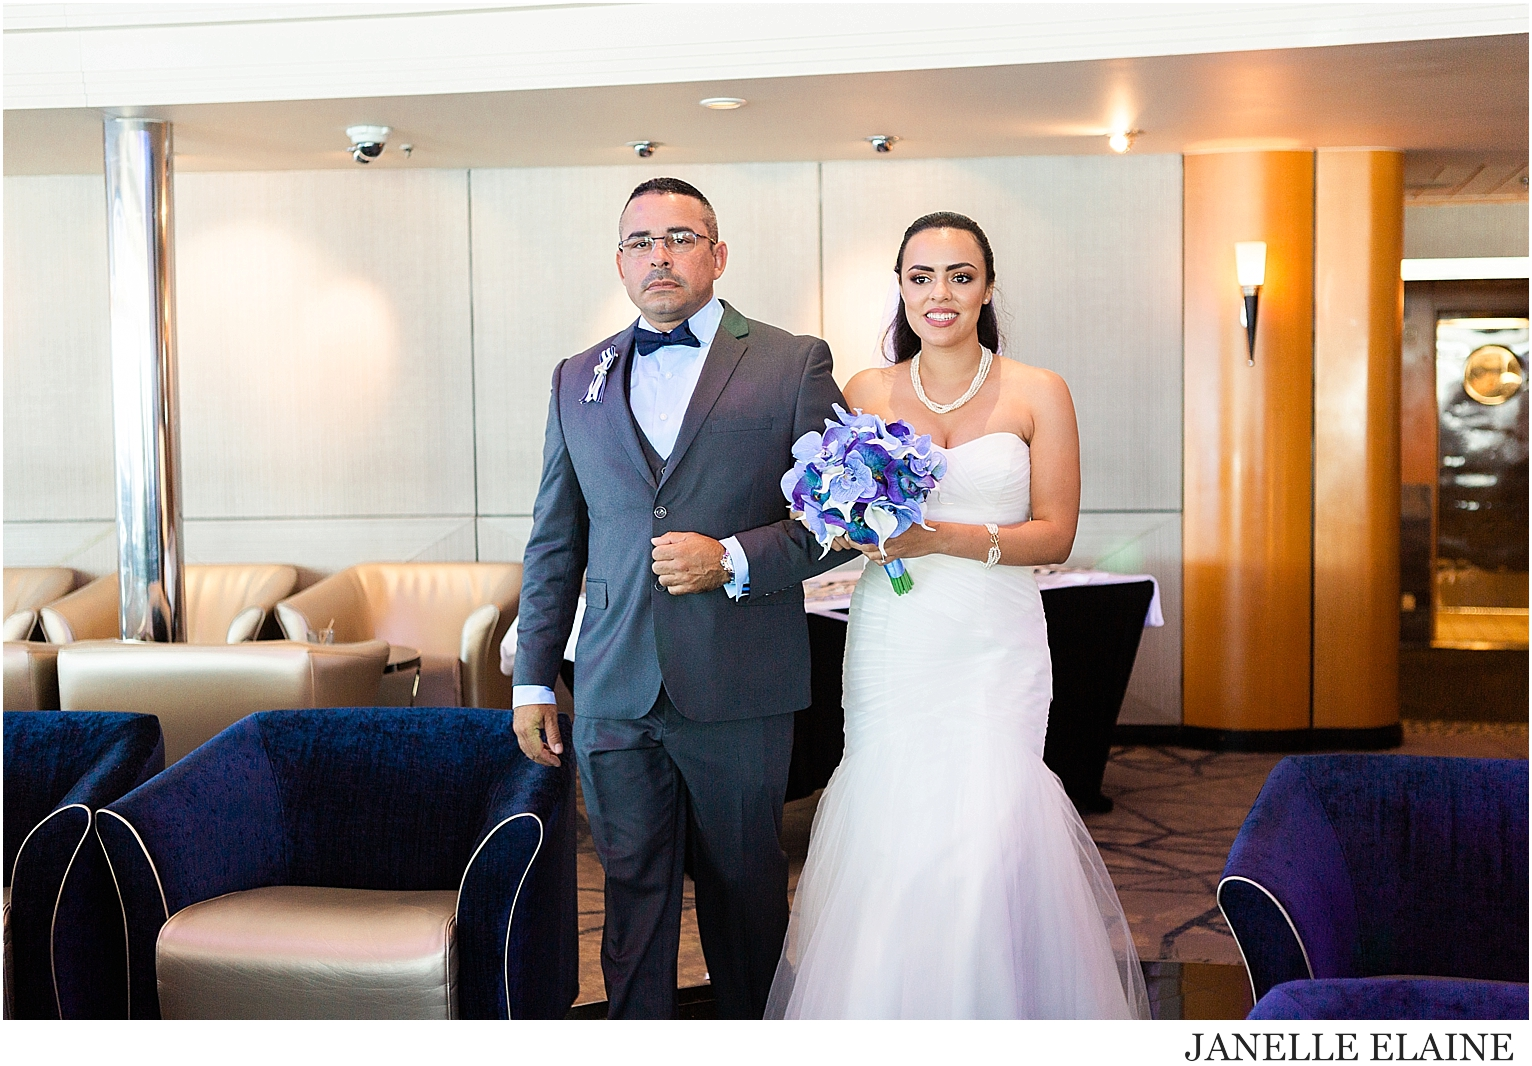 white wedding-royal caribbean-janelle elaine photography-351.jpg